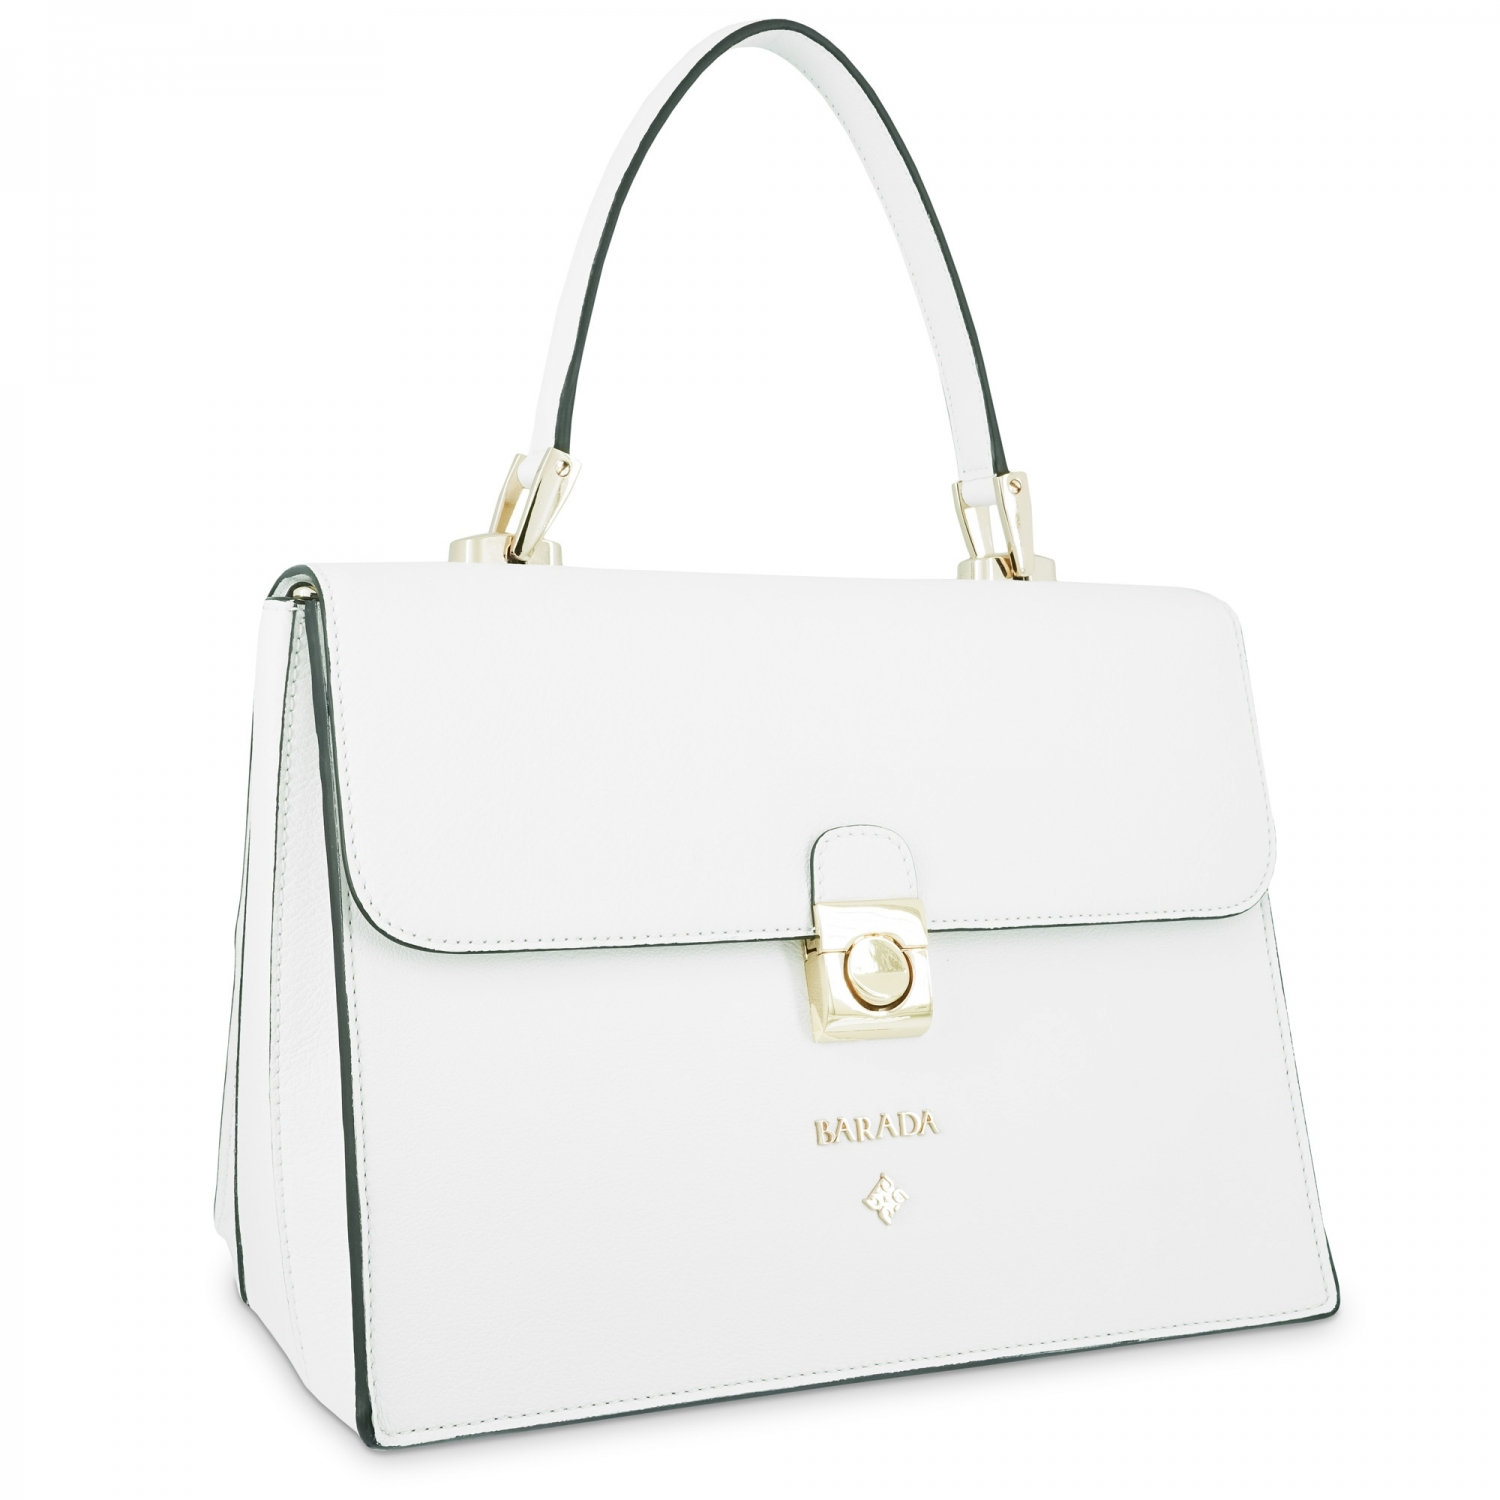 Top Handle Handbag Style 321 In Seta Leather Calf And White Colour